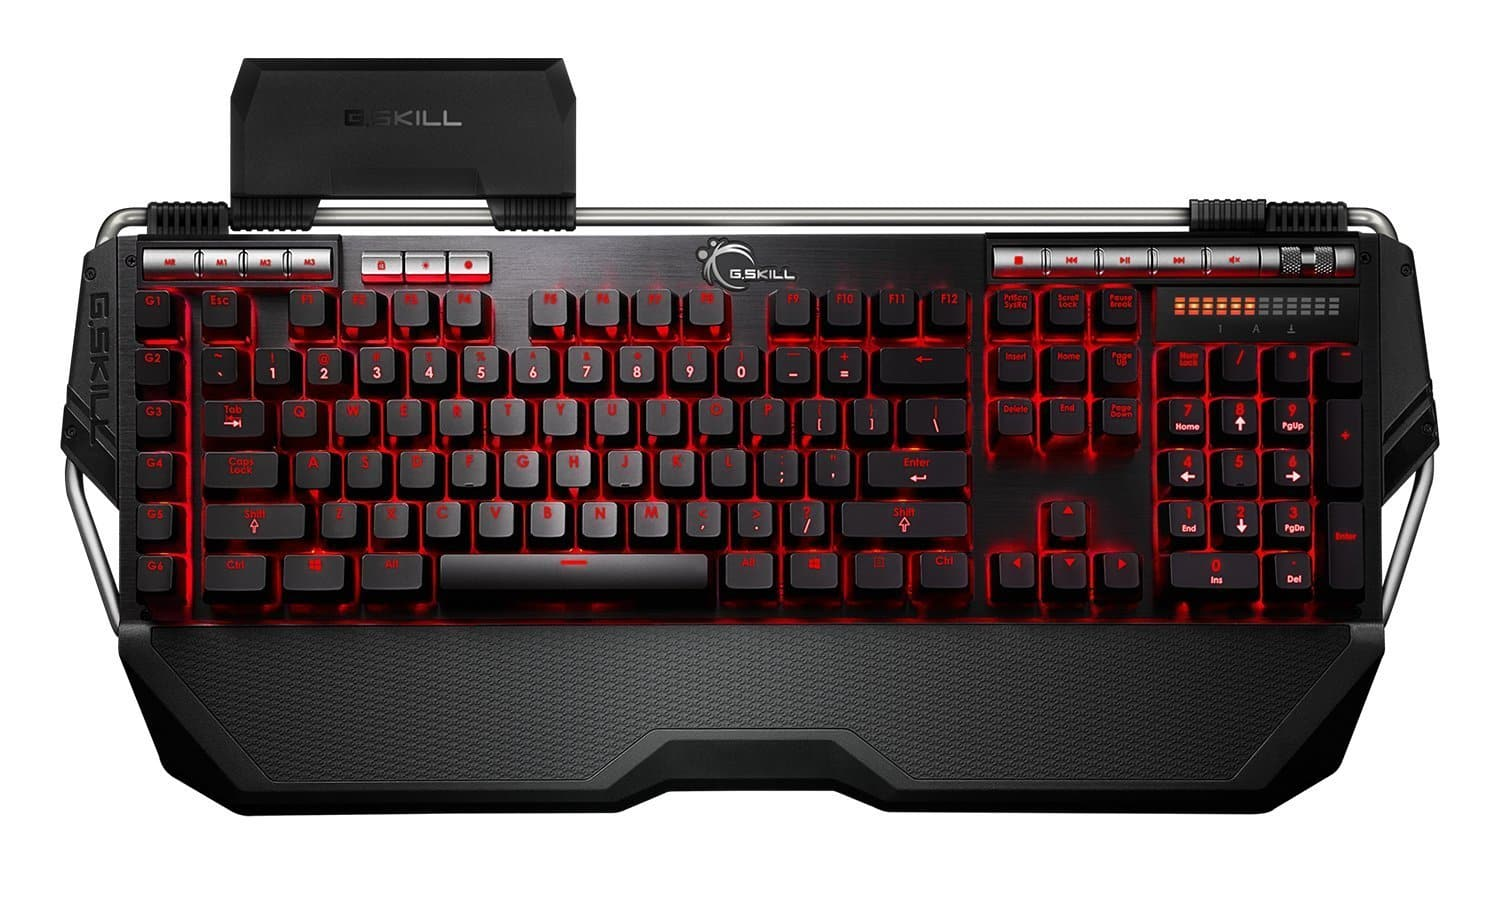 G.SKILL RIPJAWS KM780 MX On-the-Fly Macro Mechanical Gaming Keyboard, Cherry MX Brown $80.61 + Free S/H